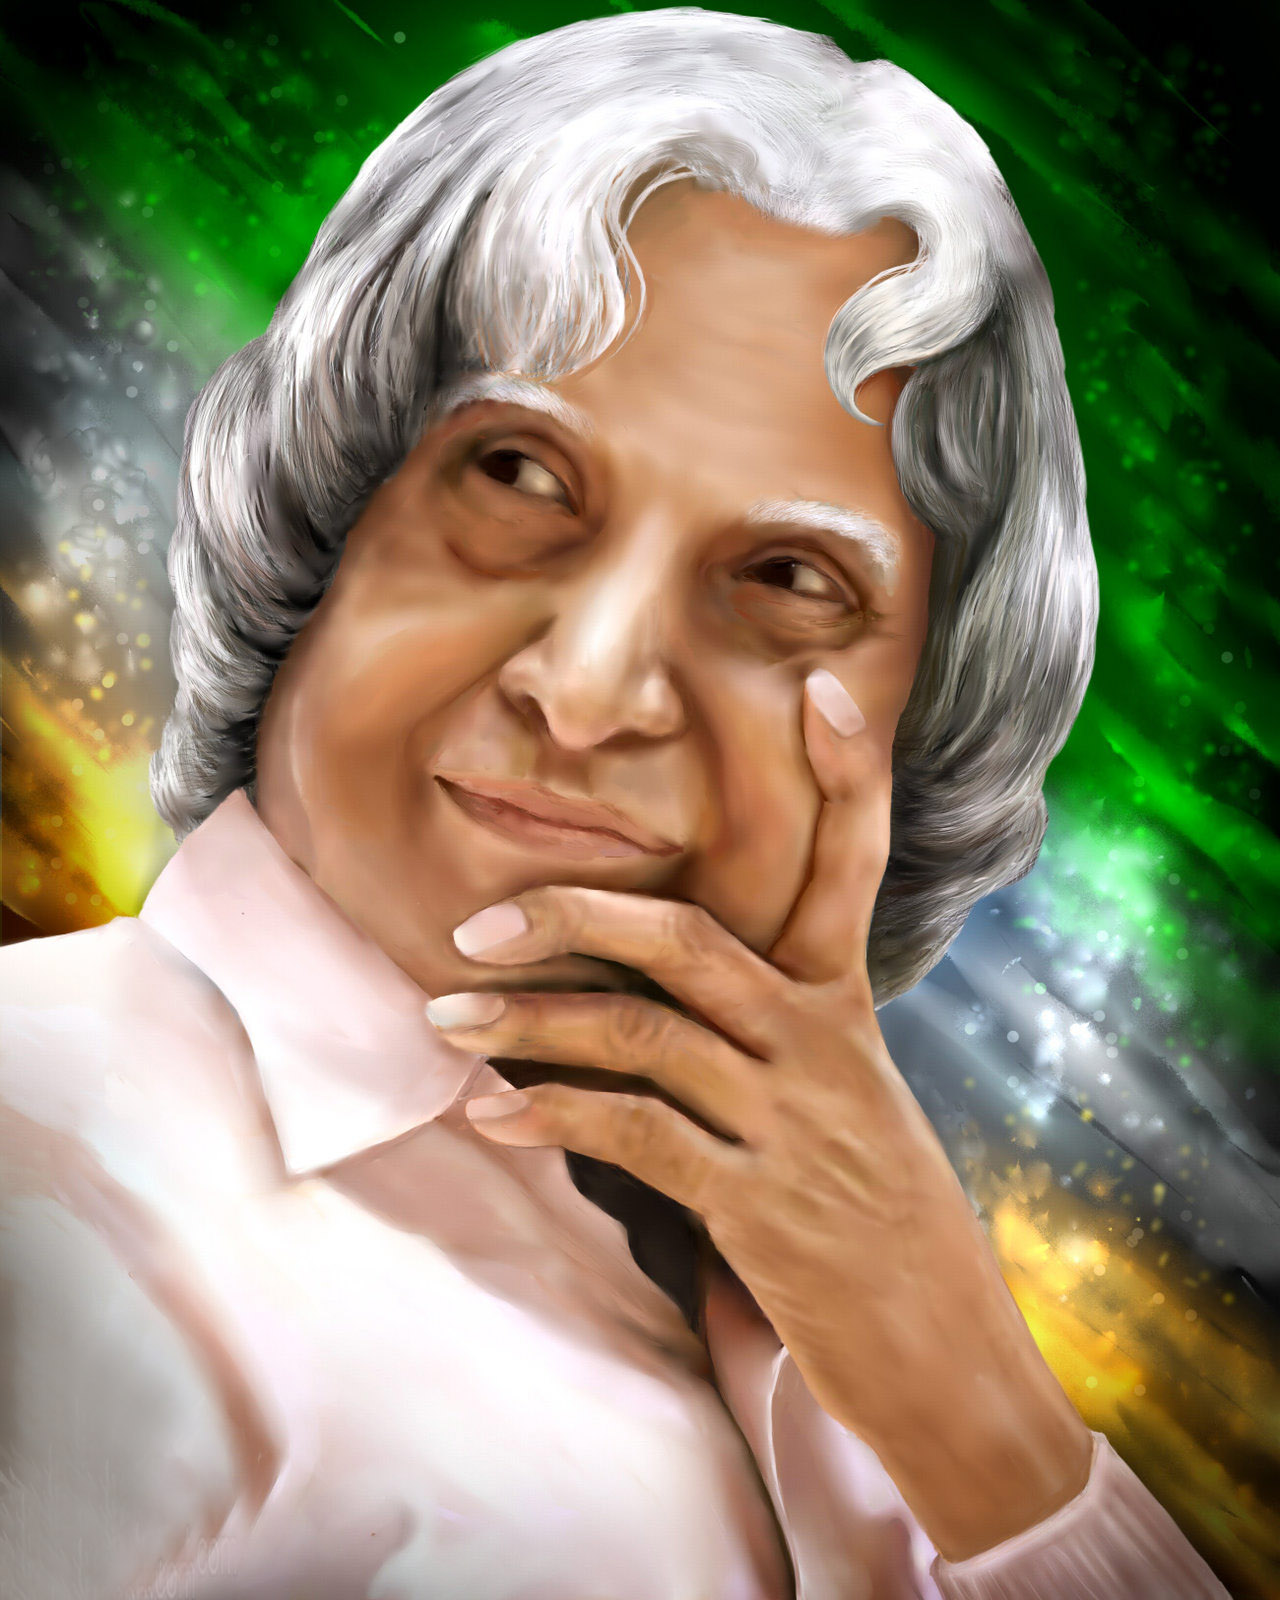 abi abdulkalam Apj abdulkalam, ramanathapuram 33k likes this is a fan page of the legend drapj abdulkalam he is a good and kind person with positive thoughts about.